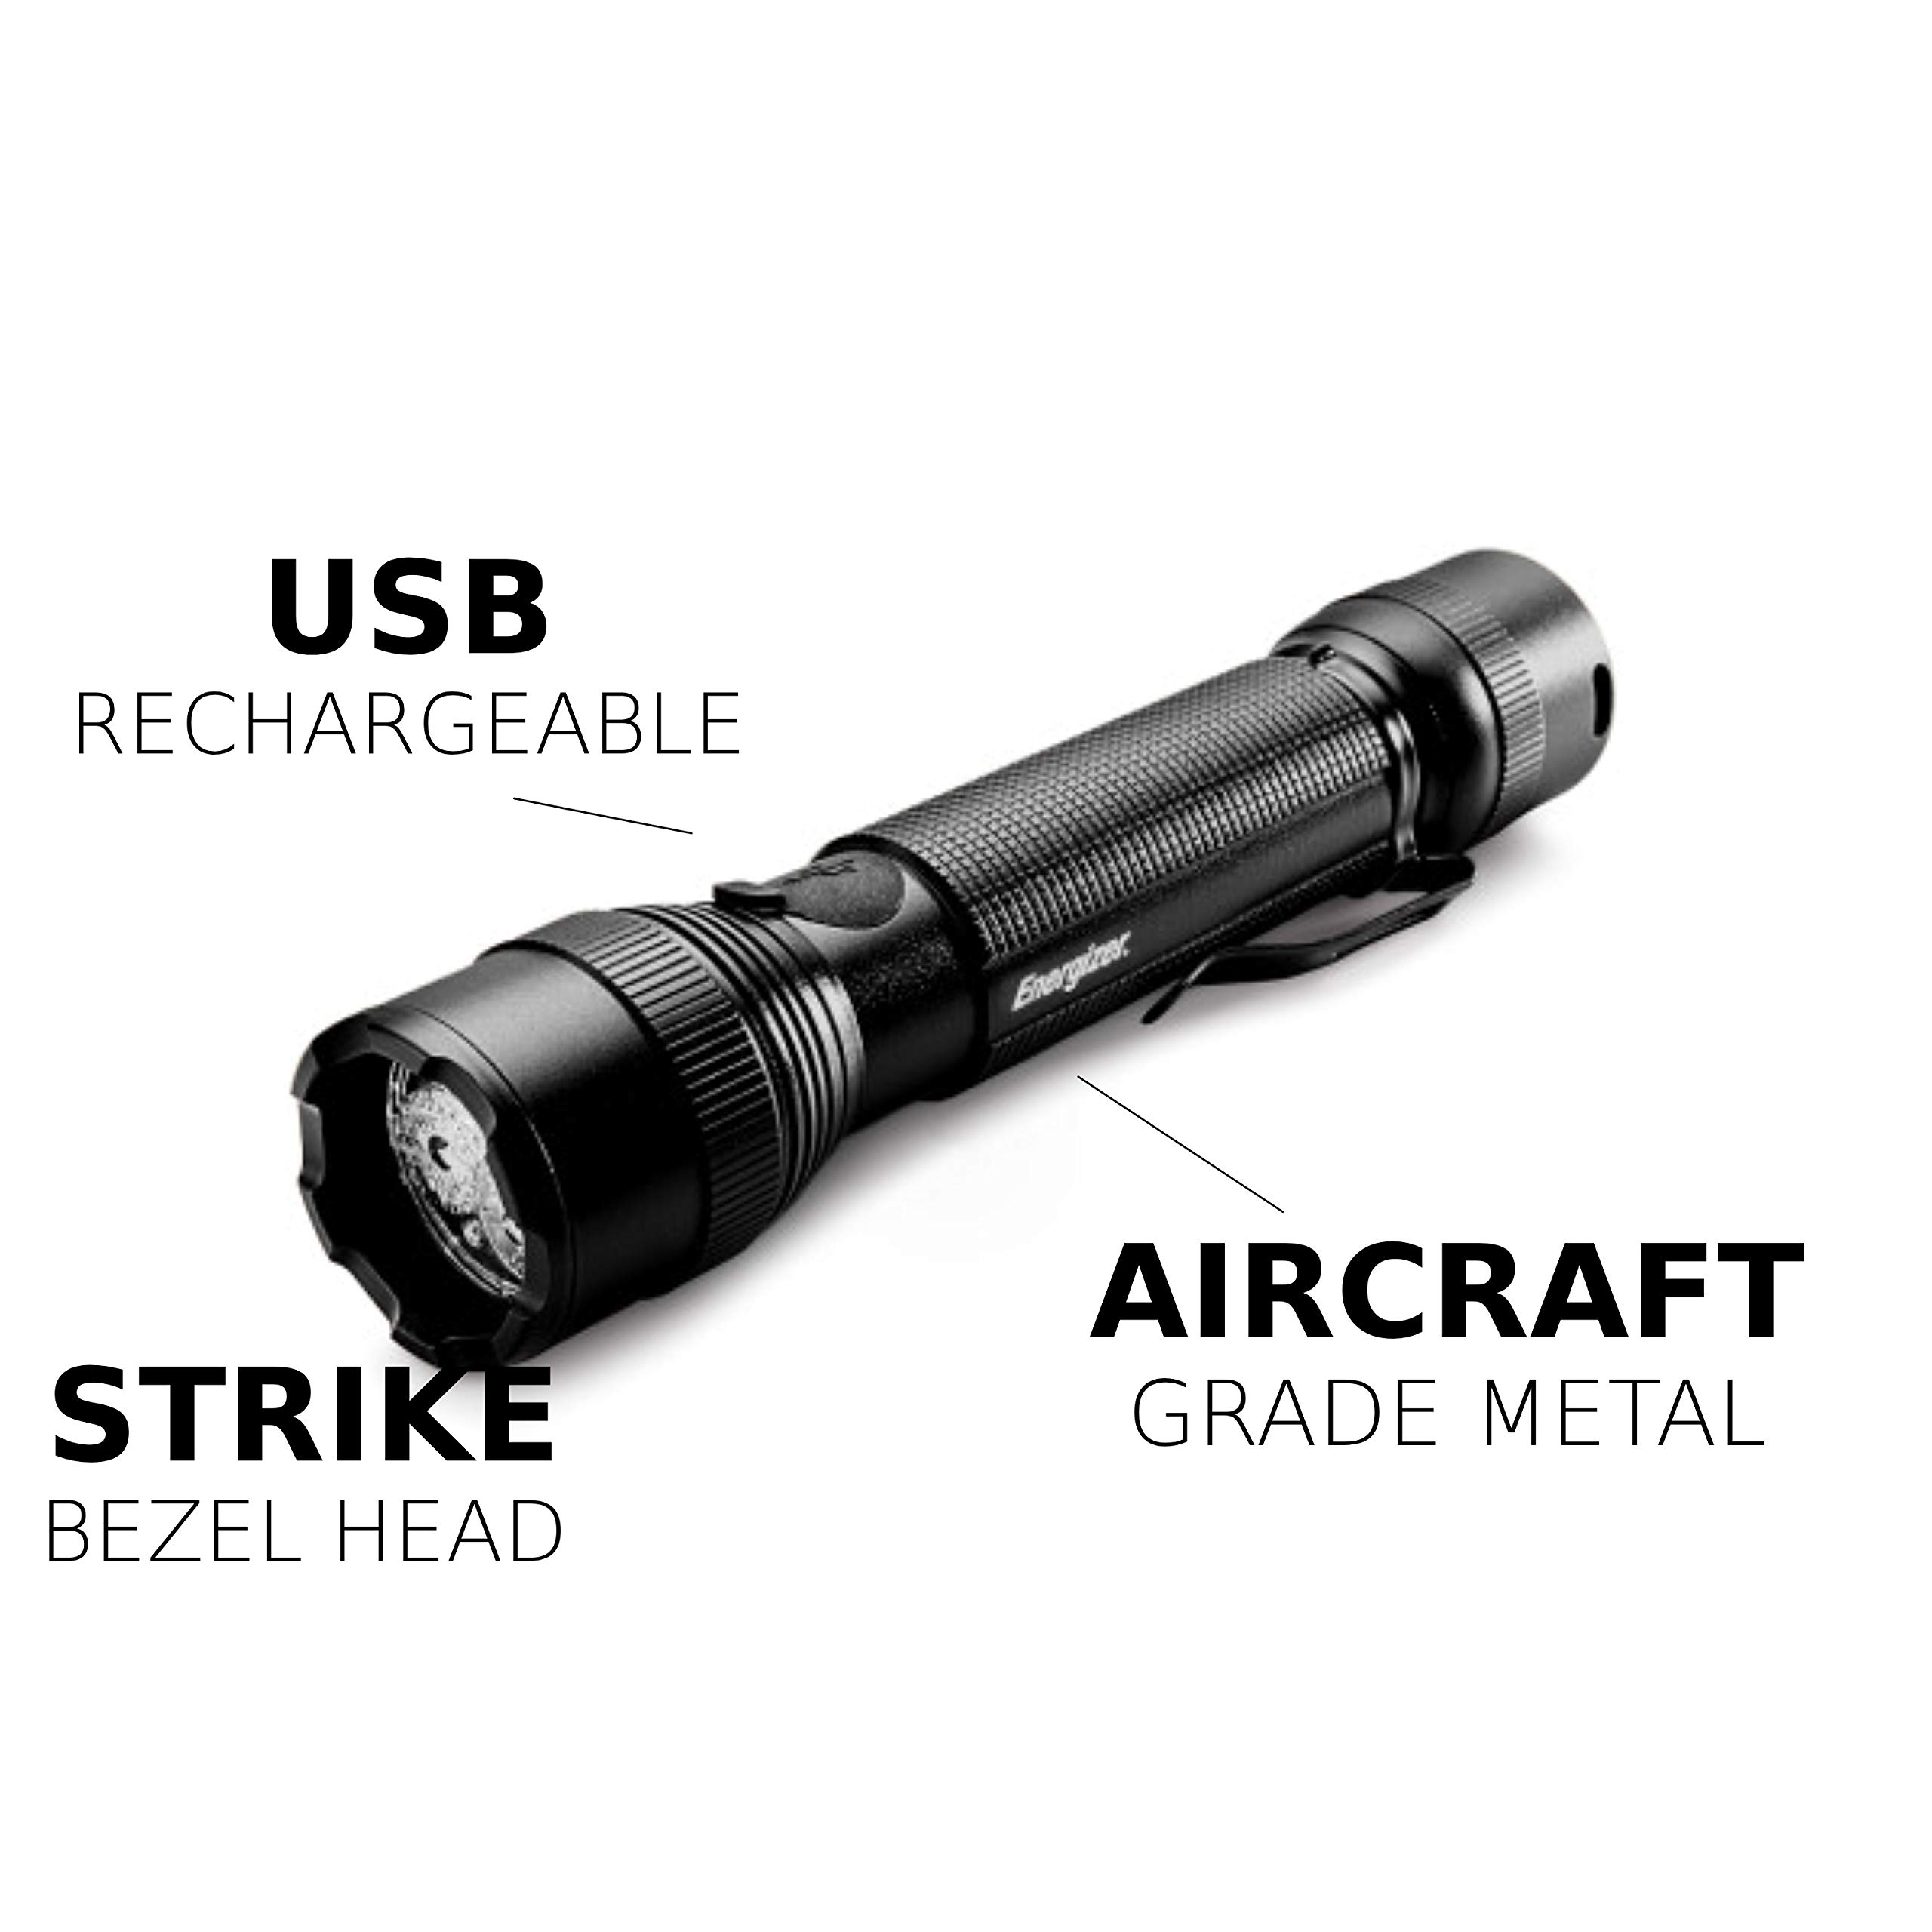 Energizer Tac-r 700 Rechargeable Tactical Flashlight, 700 Lumens 3 Modes by Energizer (Image #9)